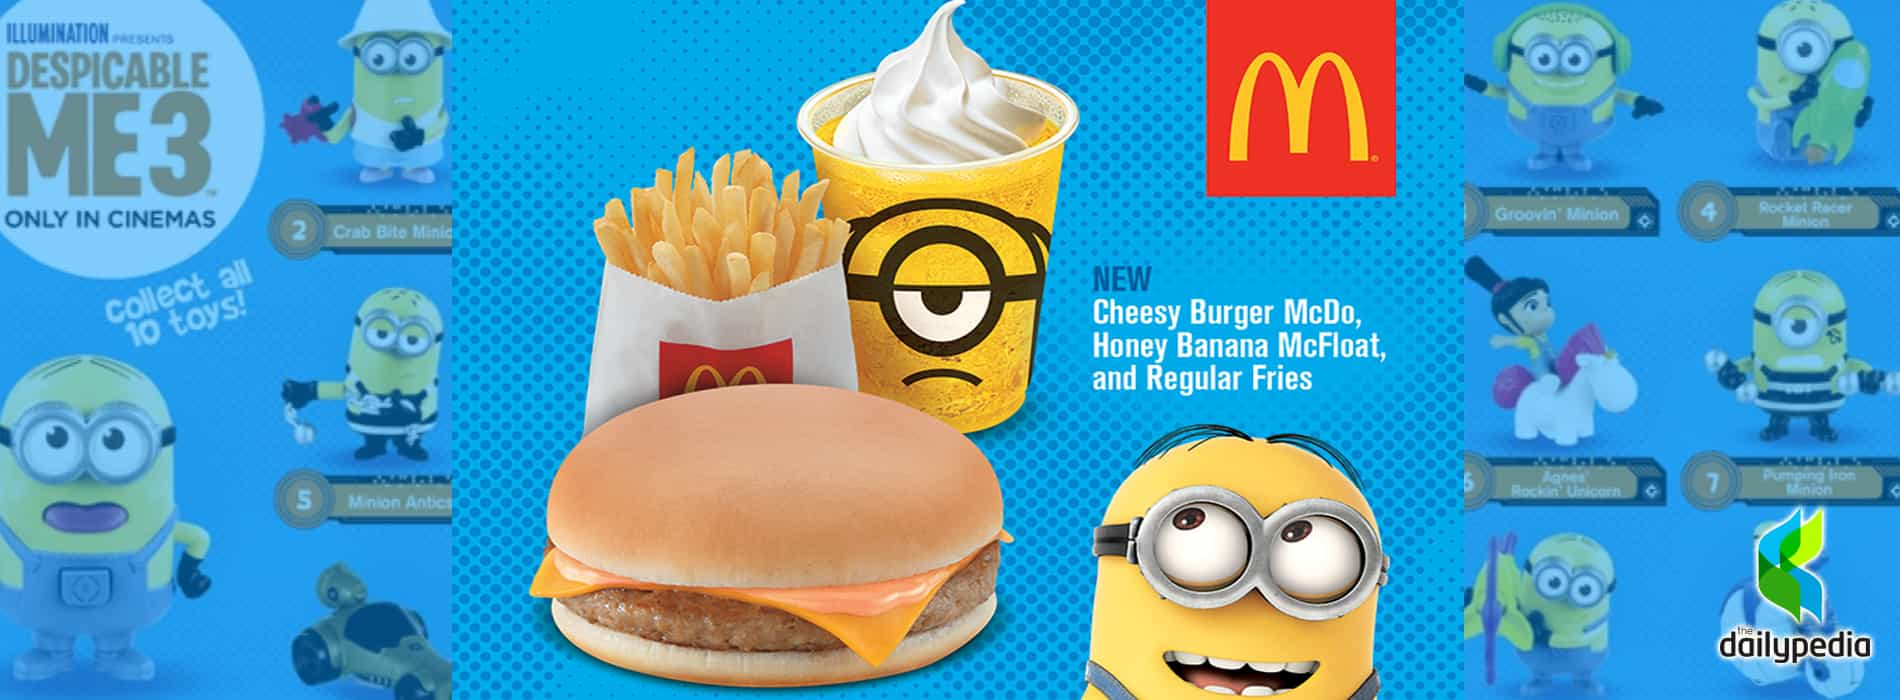 Despicable me archives dailypedia minions are back at mcdo with exciting toys when you buy a happy meal minionsatmcdo biocorpaavc Choice Image